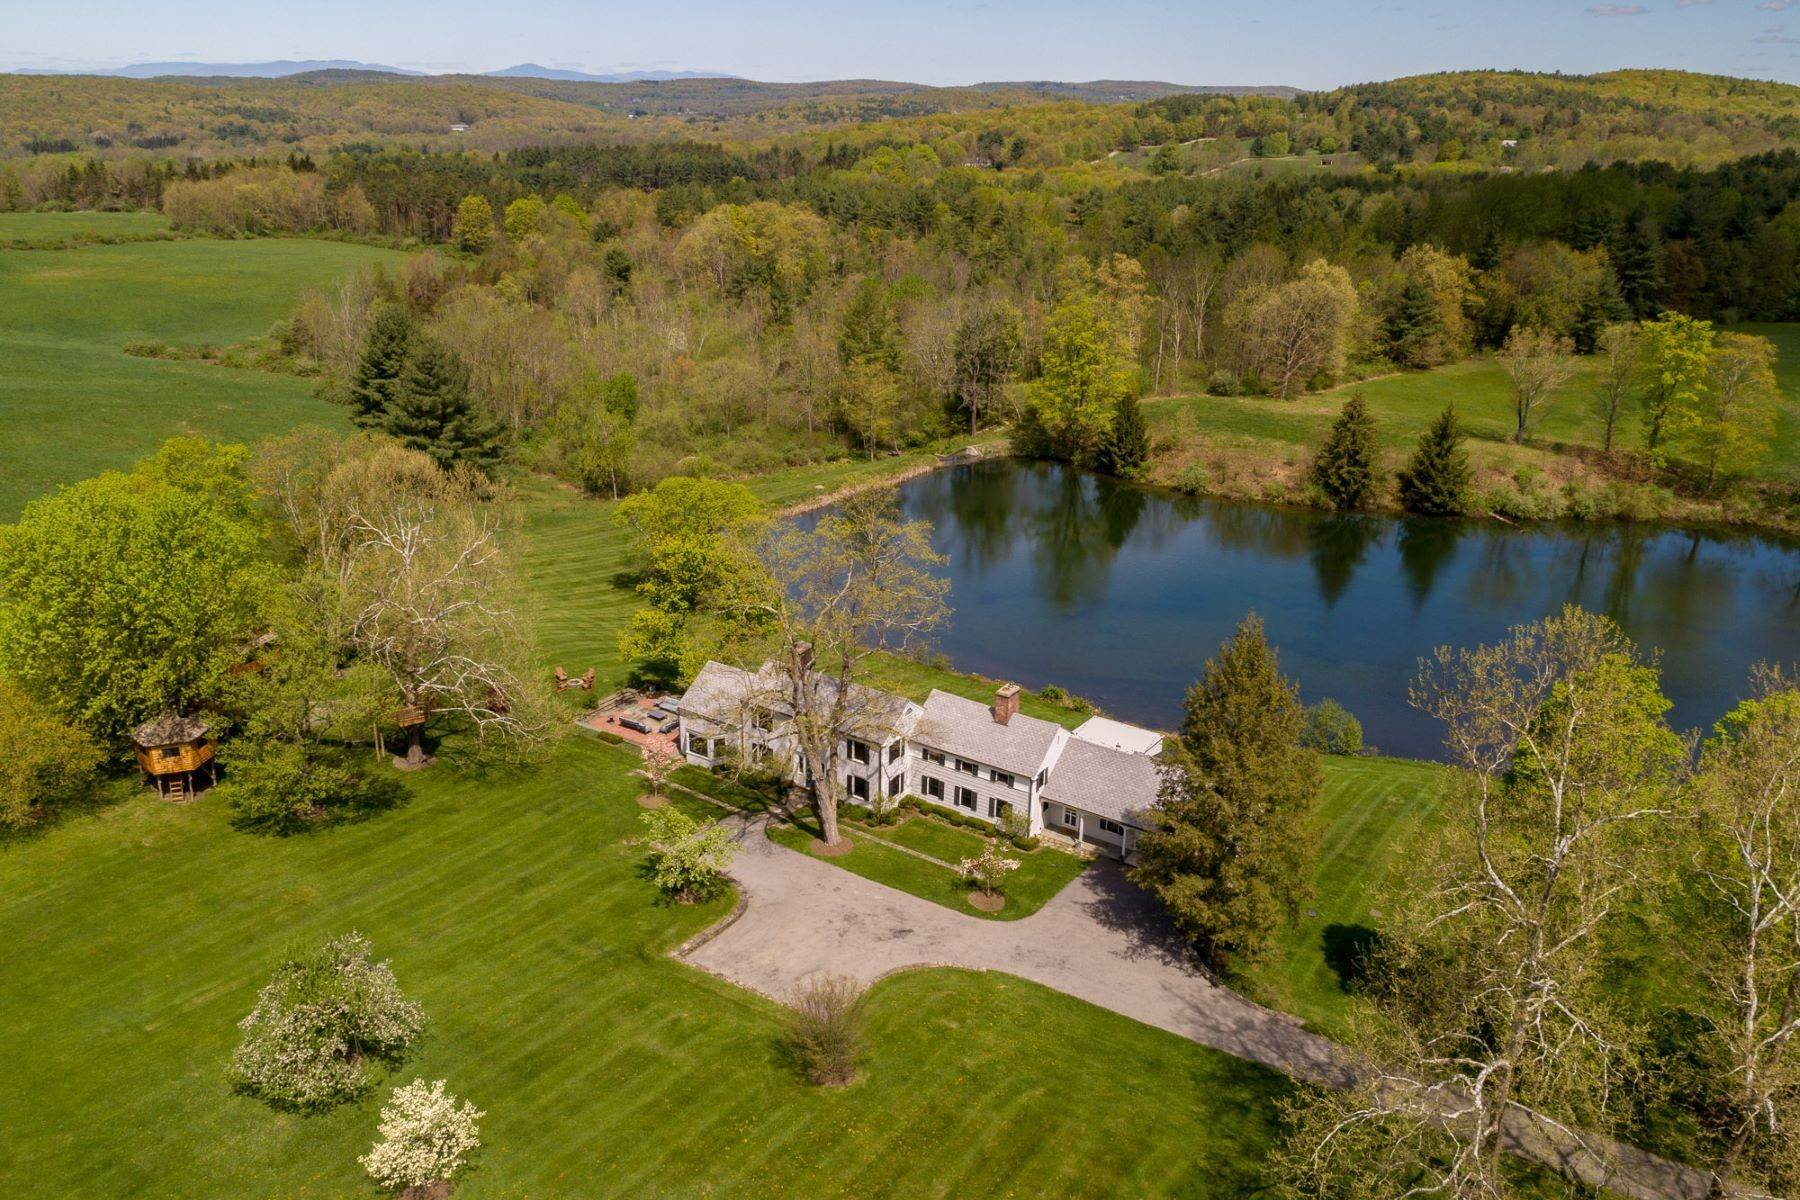 Single Family Homes for Sale at Country Retreat 749 Stanford Road Millbrook, New York 12545 United States